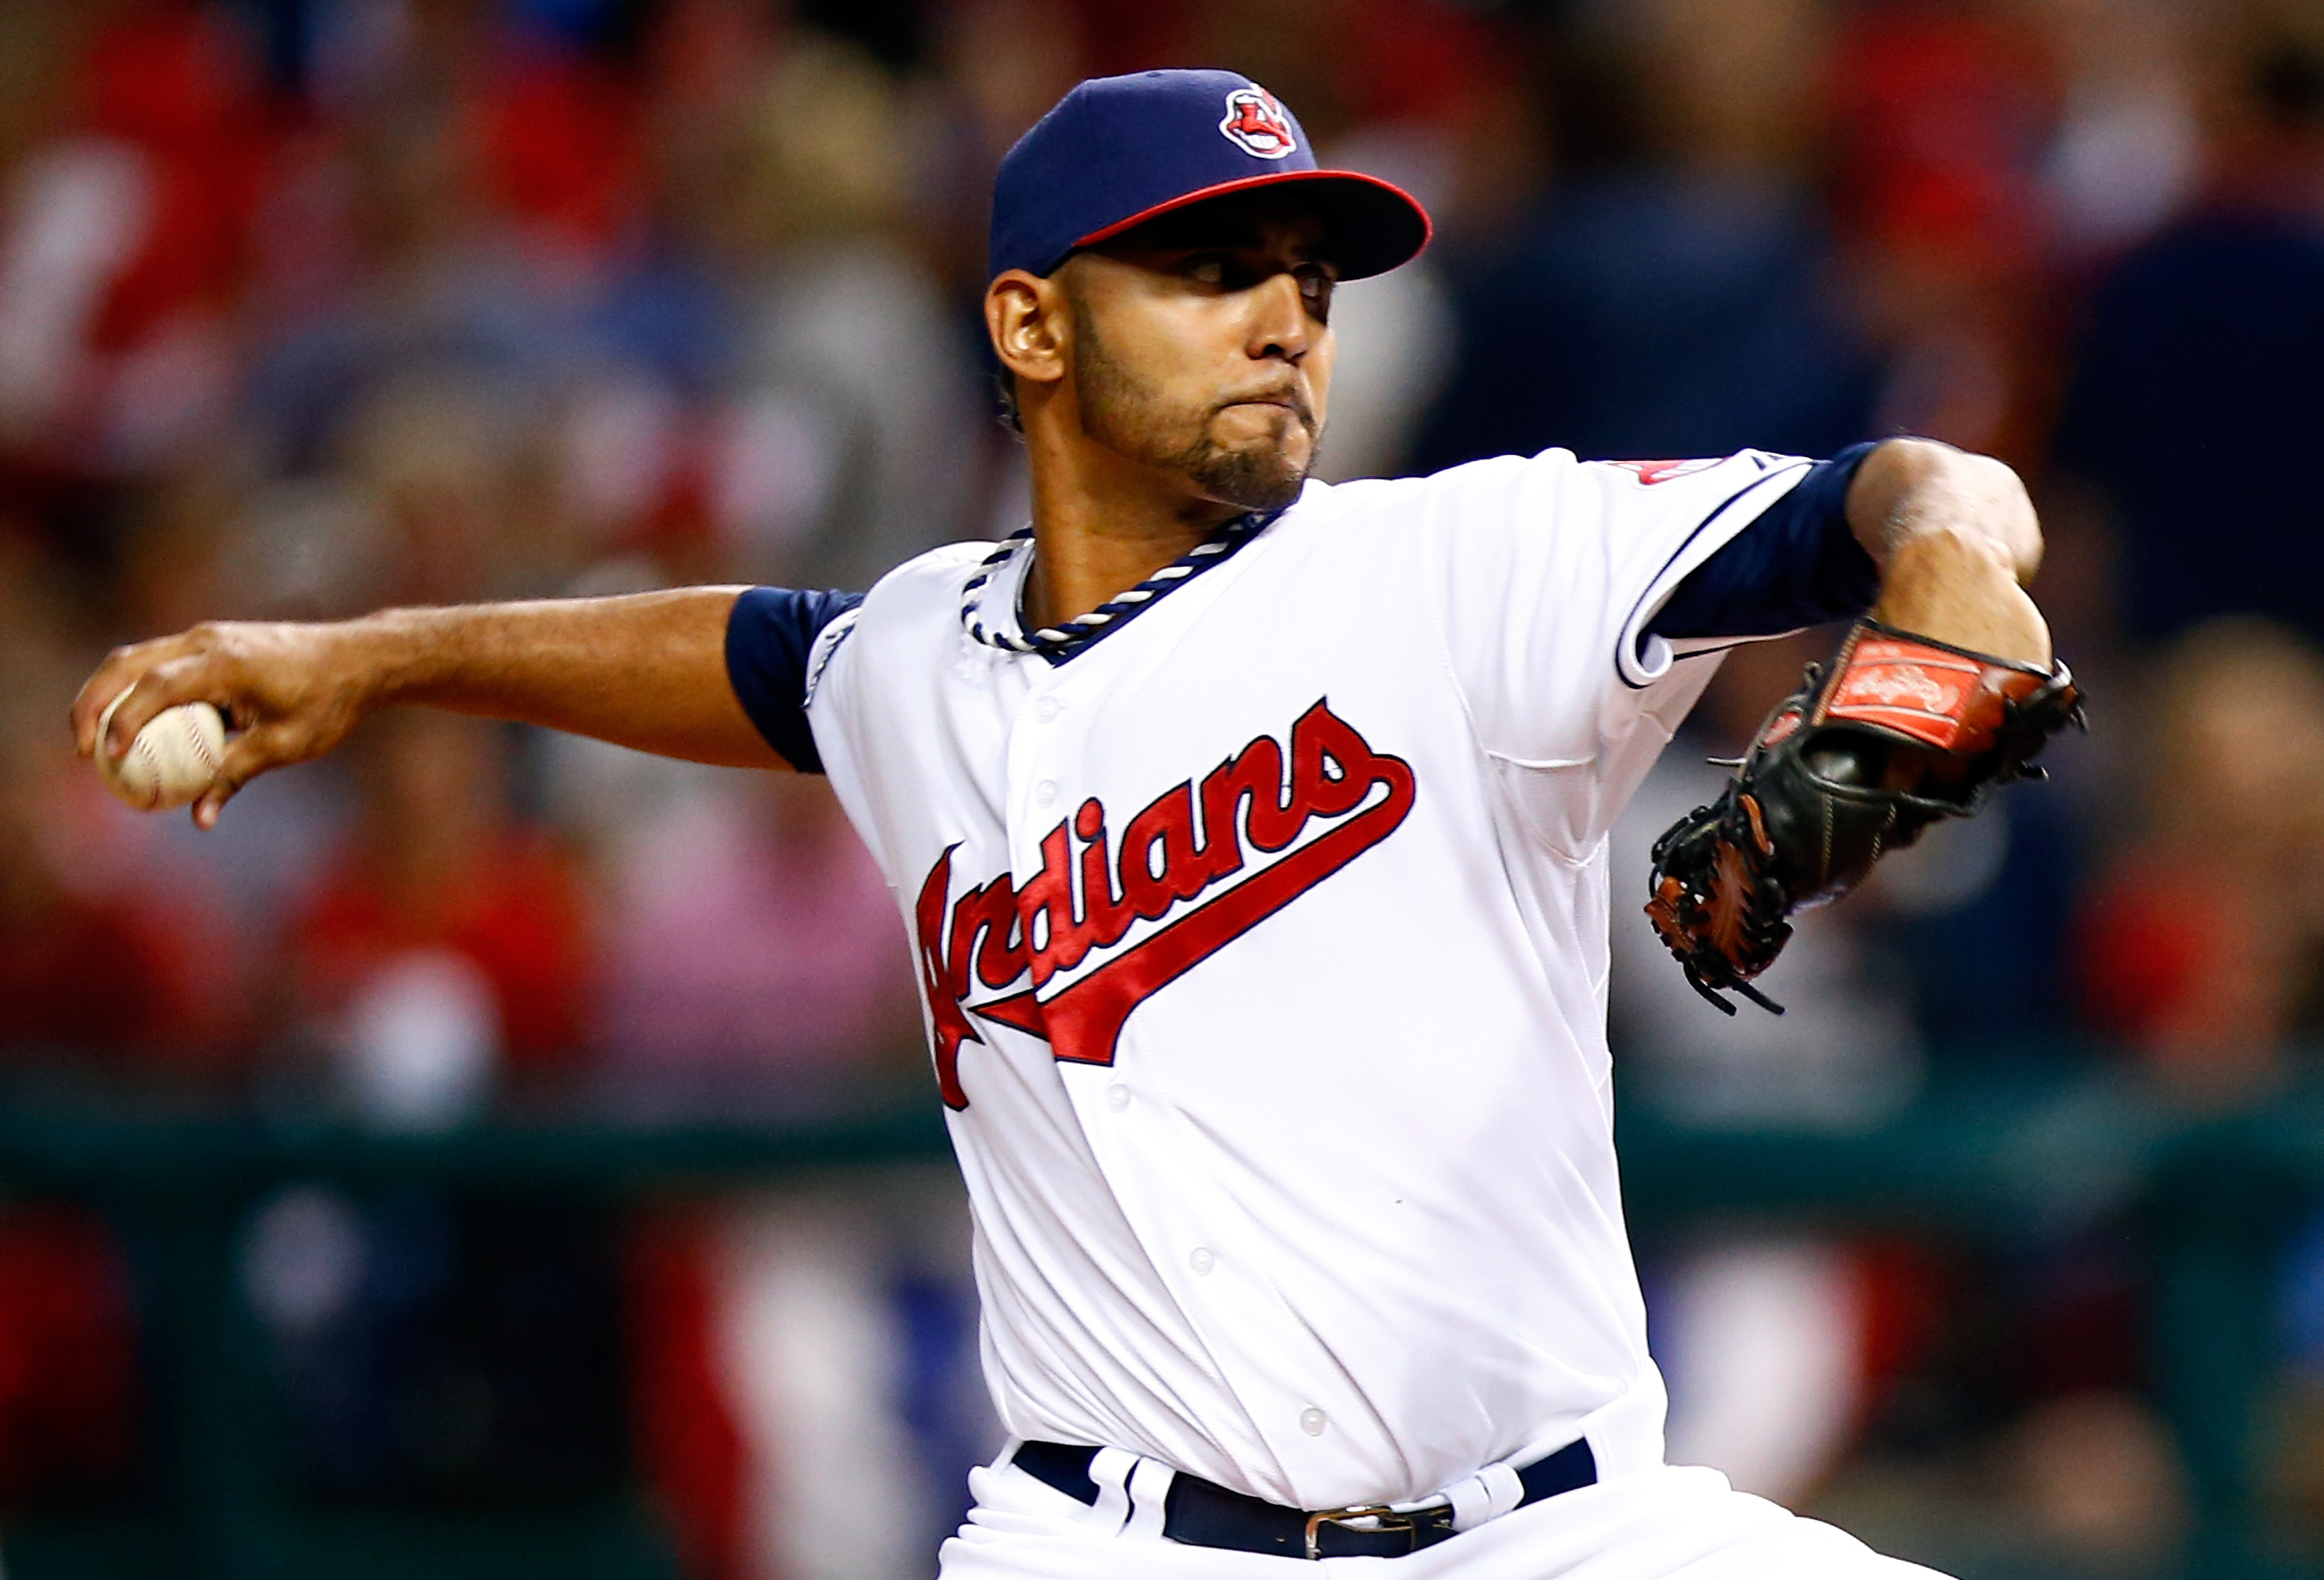 Before joining the Indians, Danny Salazar dominated the International League